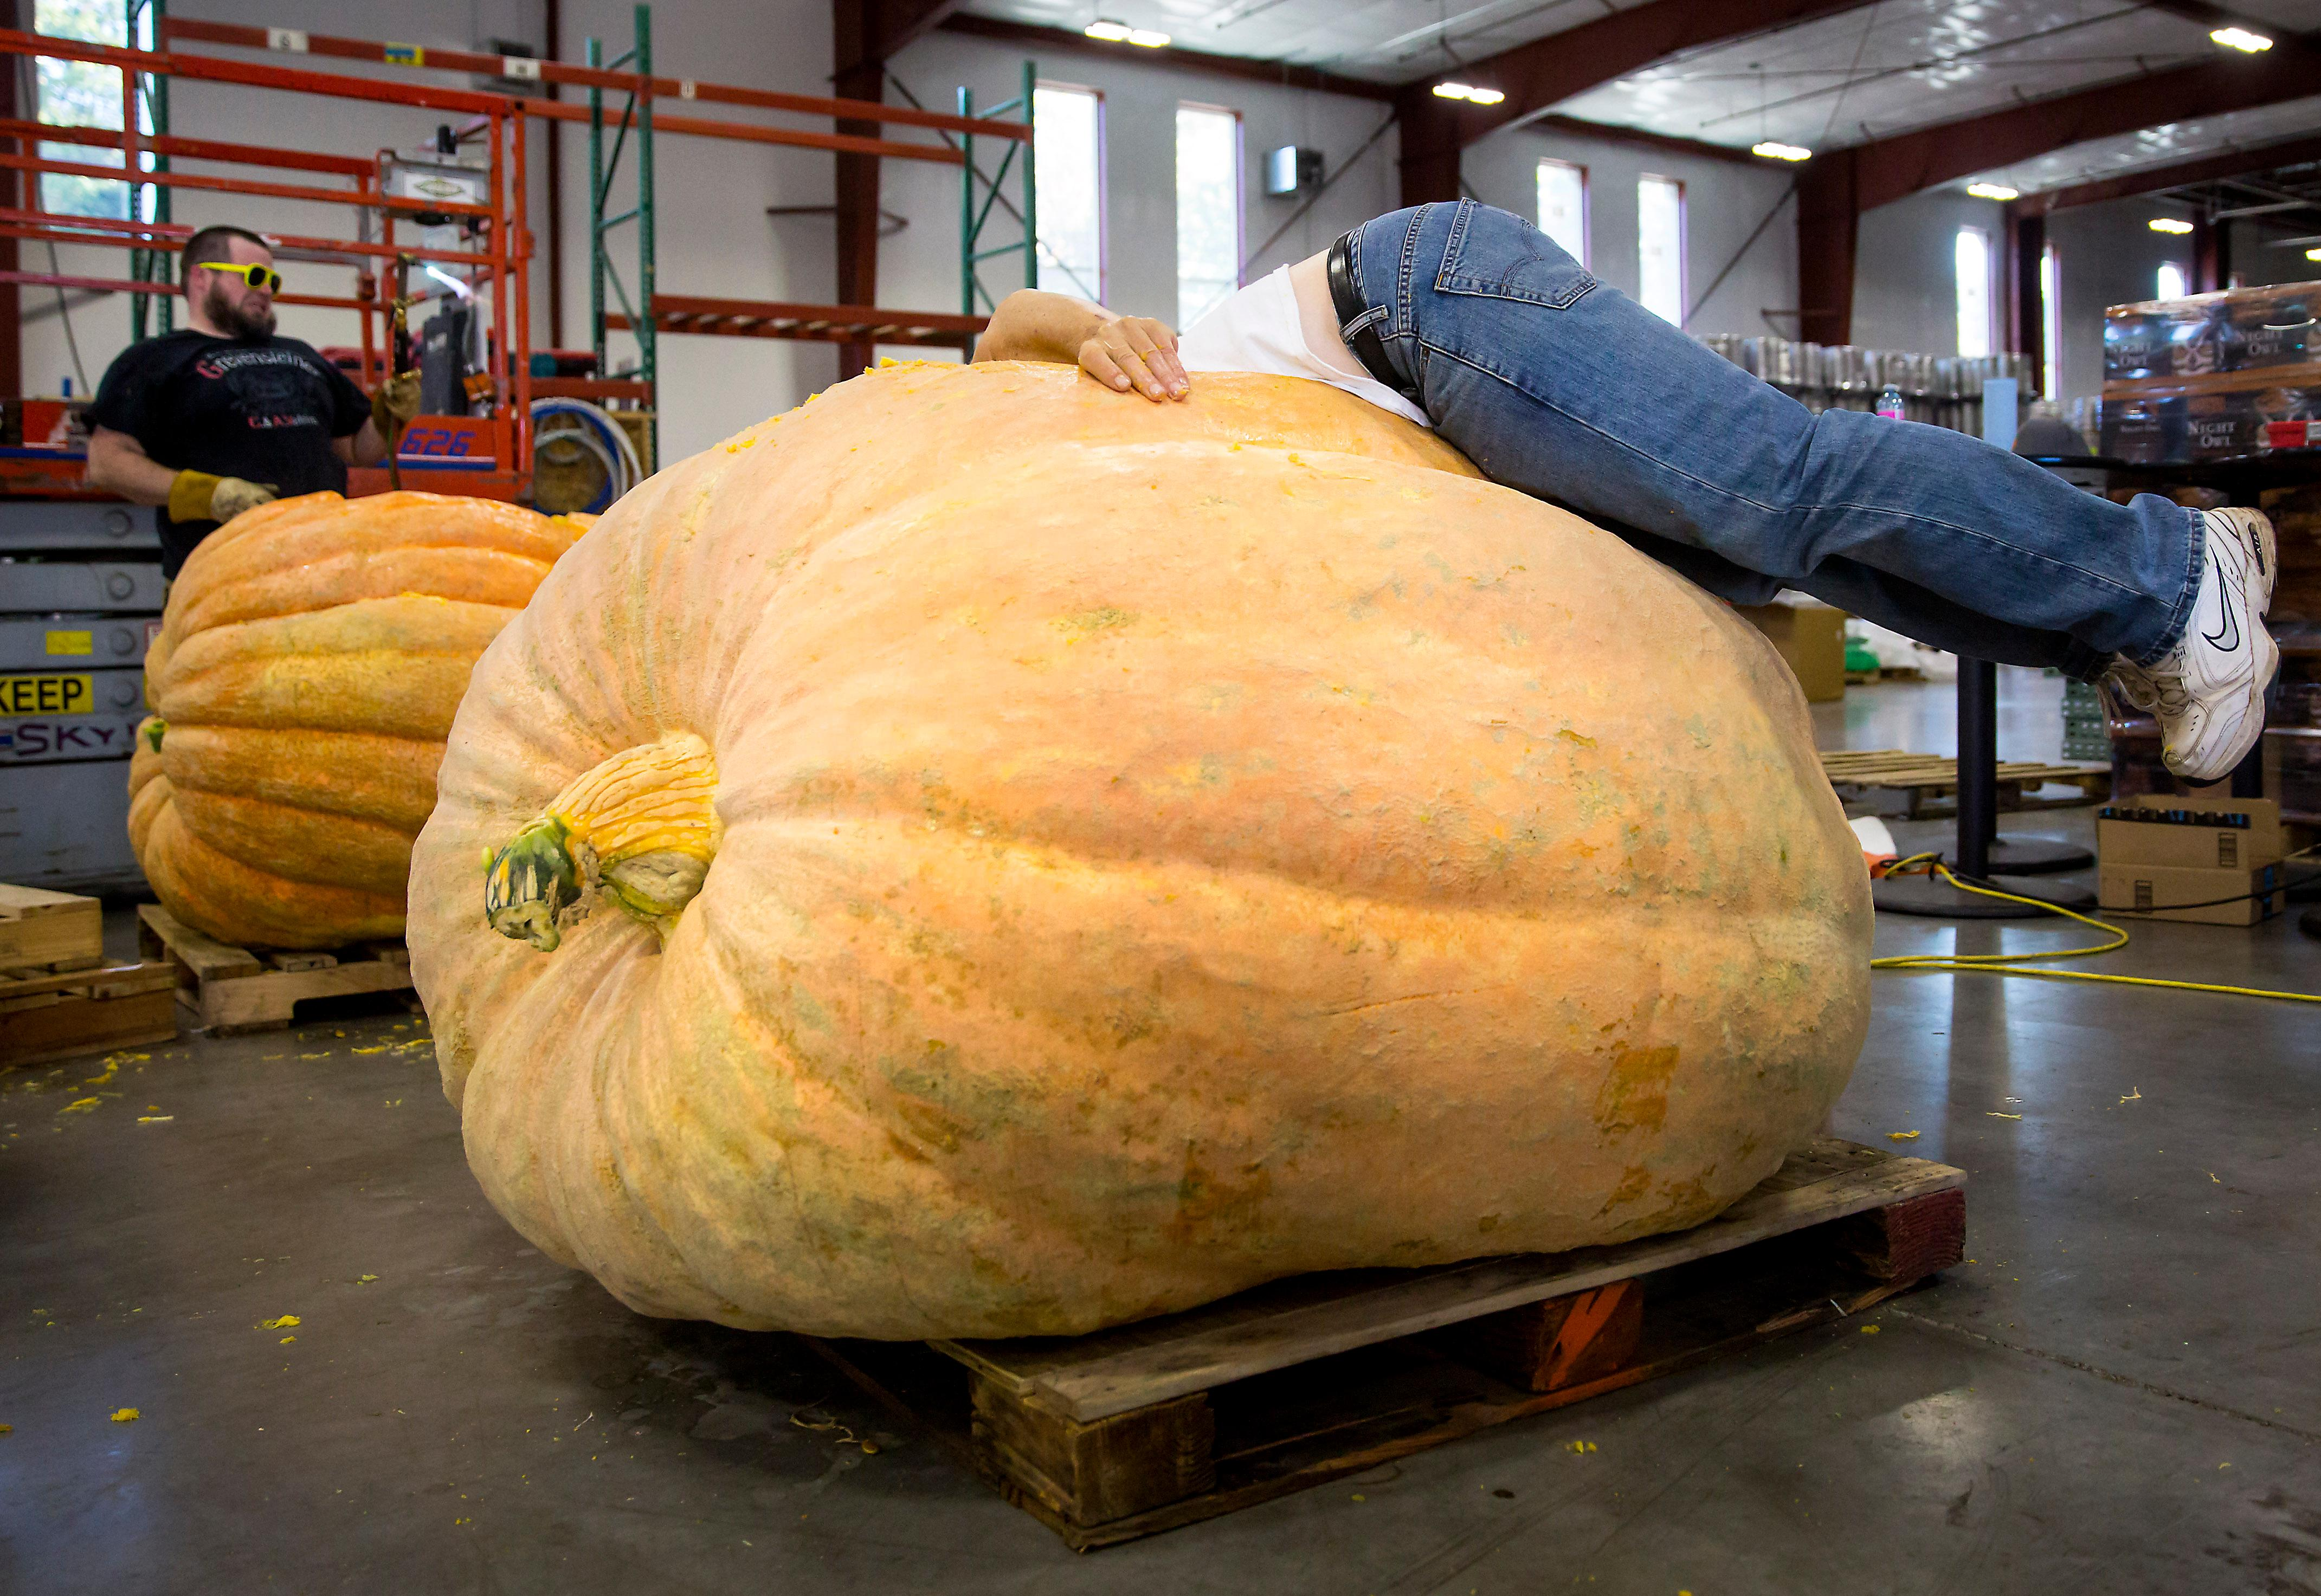 Sumner farmer Joel Holland, winner of the Great Pumpkin Weigh-Off, dives into his 1,790 pound pumpkin to pull out the precious seeds he will use or sell for future pumpkins at Elysian Brewing. (Sy Bean / Seattle Refined)